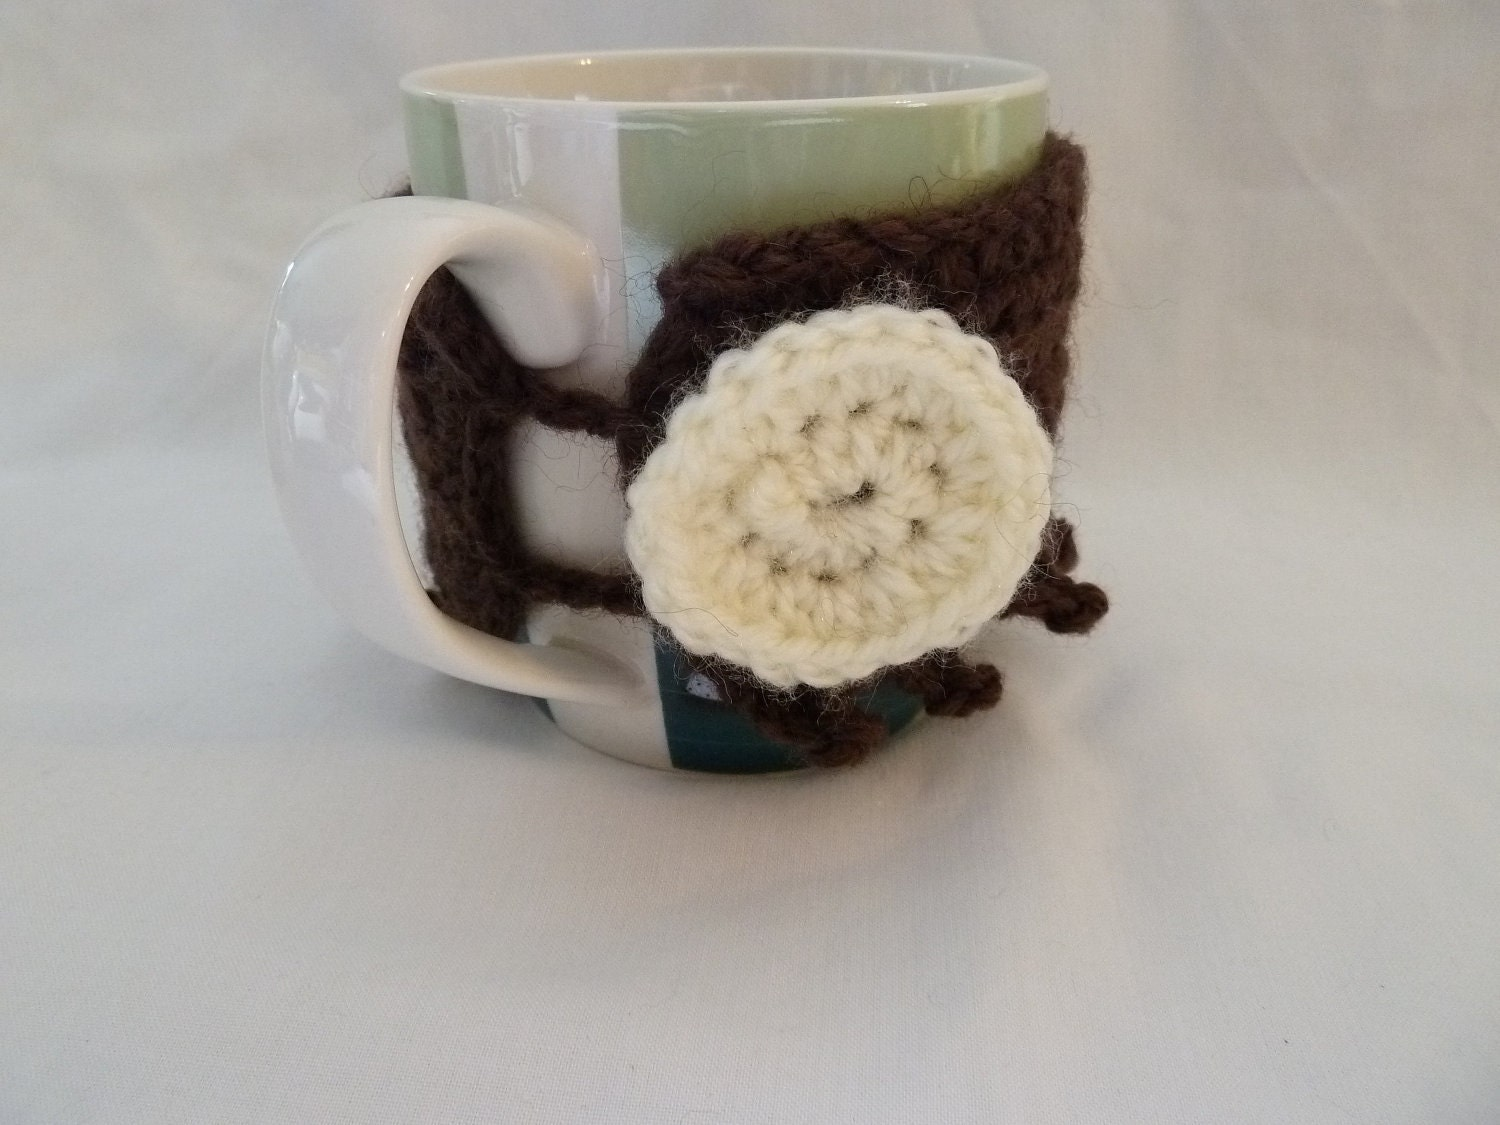 Crocheted Tea and Coffee Mug Cosy in Chocolate Brown with Vanilla Cookie Button - Crochet - Cozy - Warmer - Sleeve